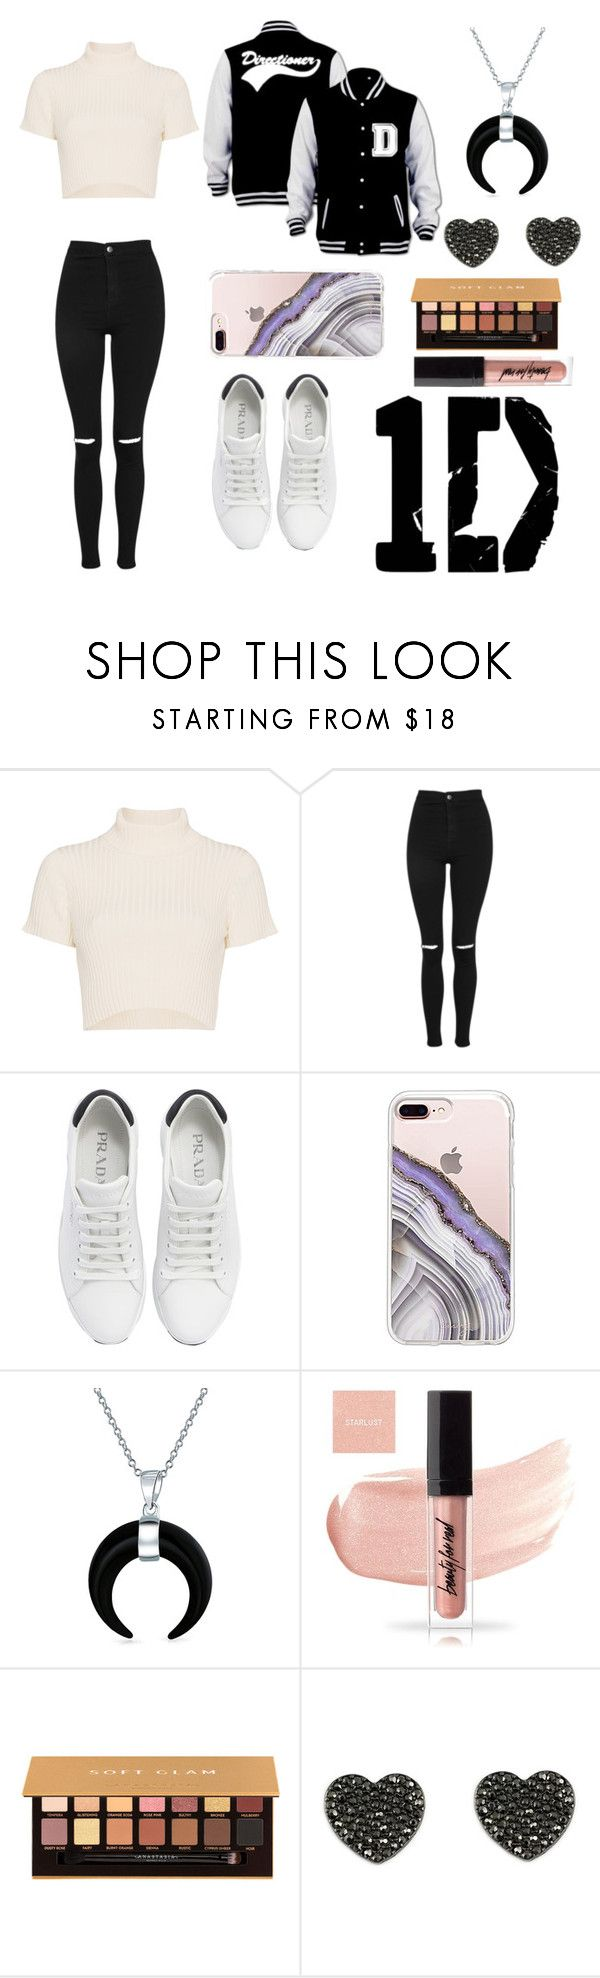 """Meeting 1D"" by thegirlwithglasses1354 ❤ liked on Polyvore featuring Staud, Topshop, Prada, Steve Madden, Bling Jewelry and Anastasia Beverly Hills"